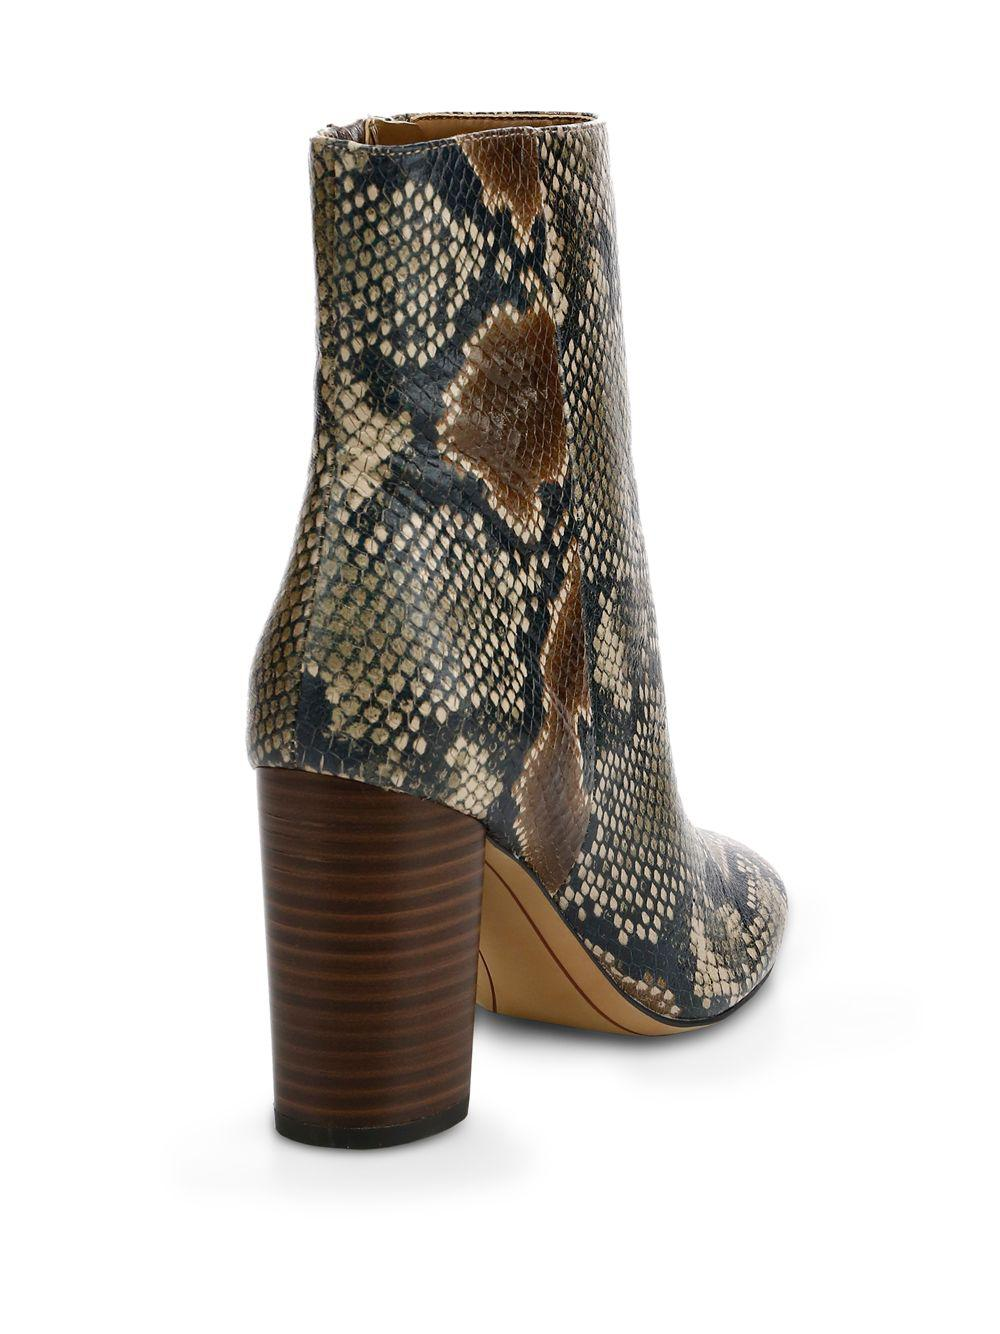 d5f92d70beb0 Lyst - Sam Edelman Corra Snake-embossed Ankle Boots in Brown